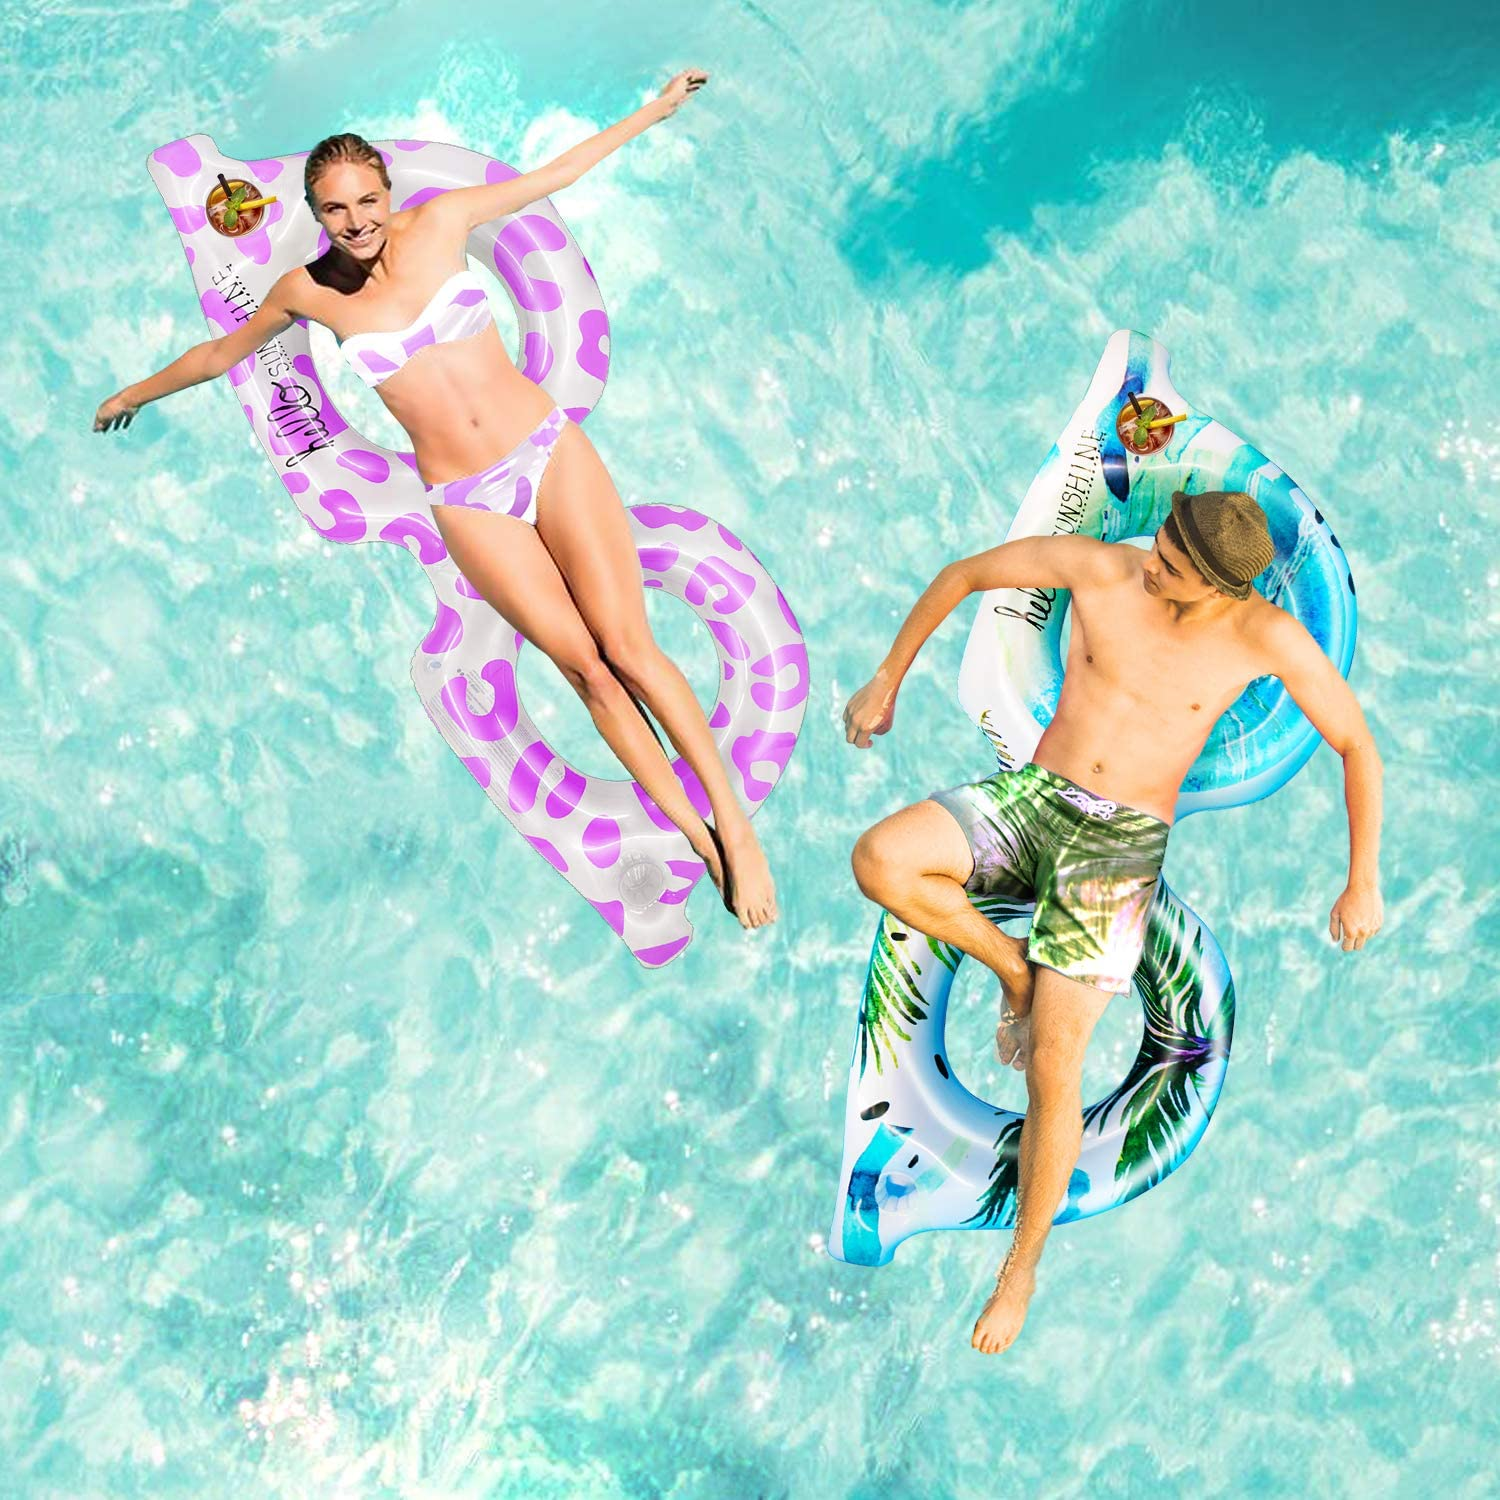 74 Giant Inflatable Pool Float for Adults Teen Sunglass Lounge Chair Funny Floats Pool Toys for Pool Summer Beach Lake Water Fun Party Supplies Couple Rings Raft with 2 Cup Holders Pink